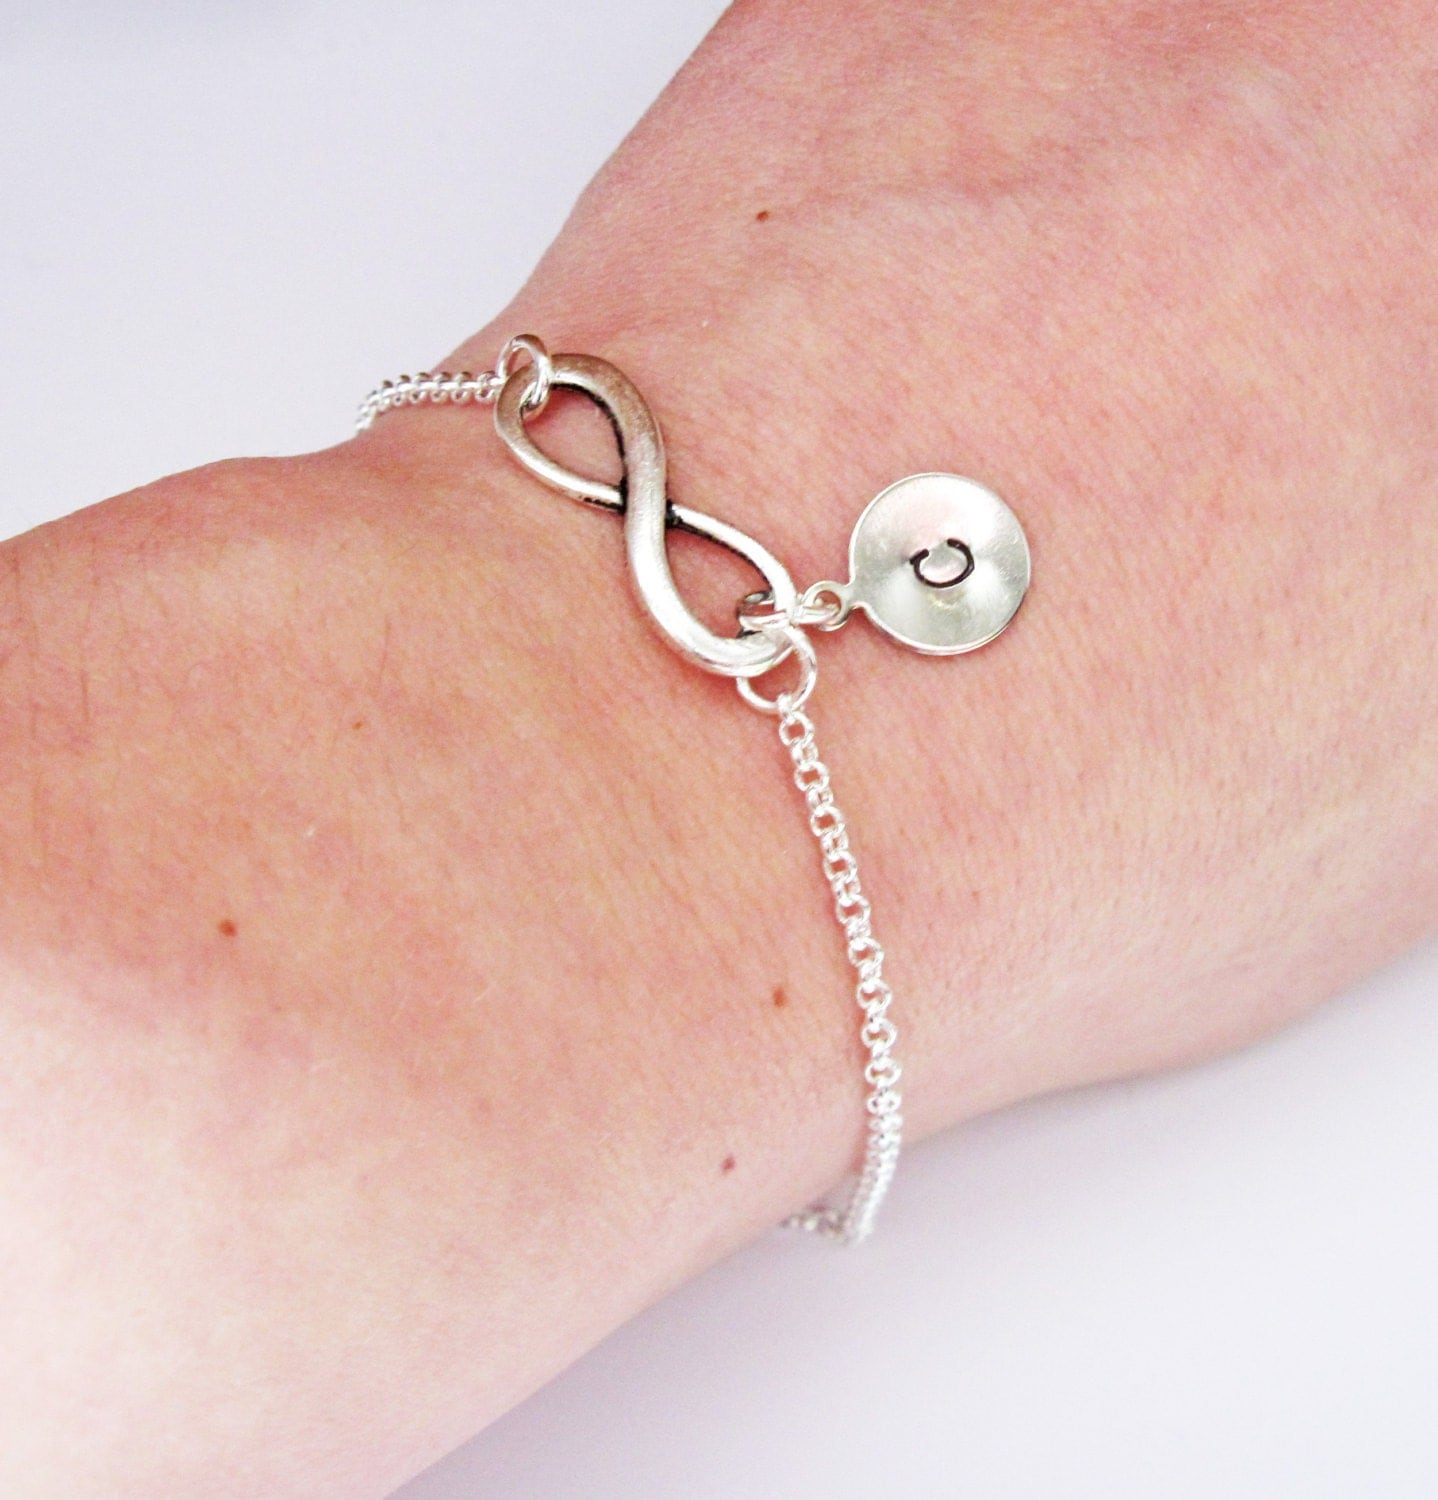 items similar to personalized infinity bracelet with